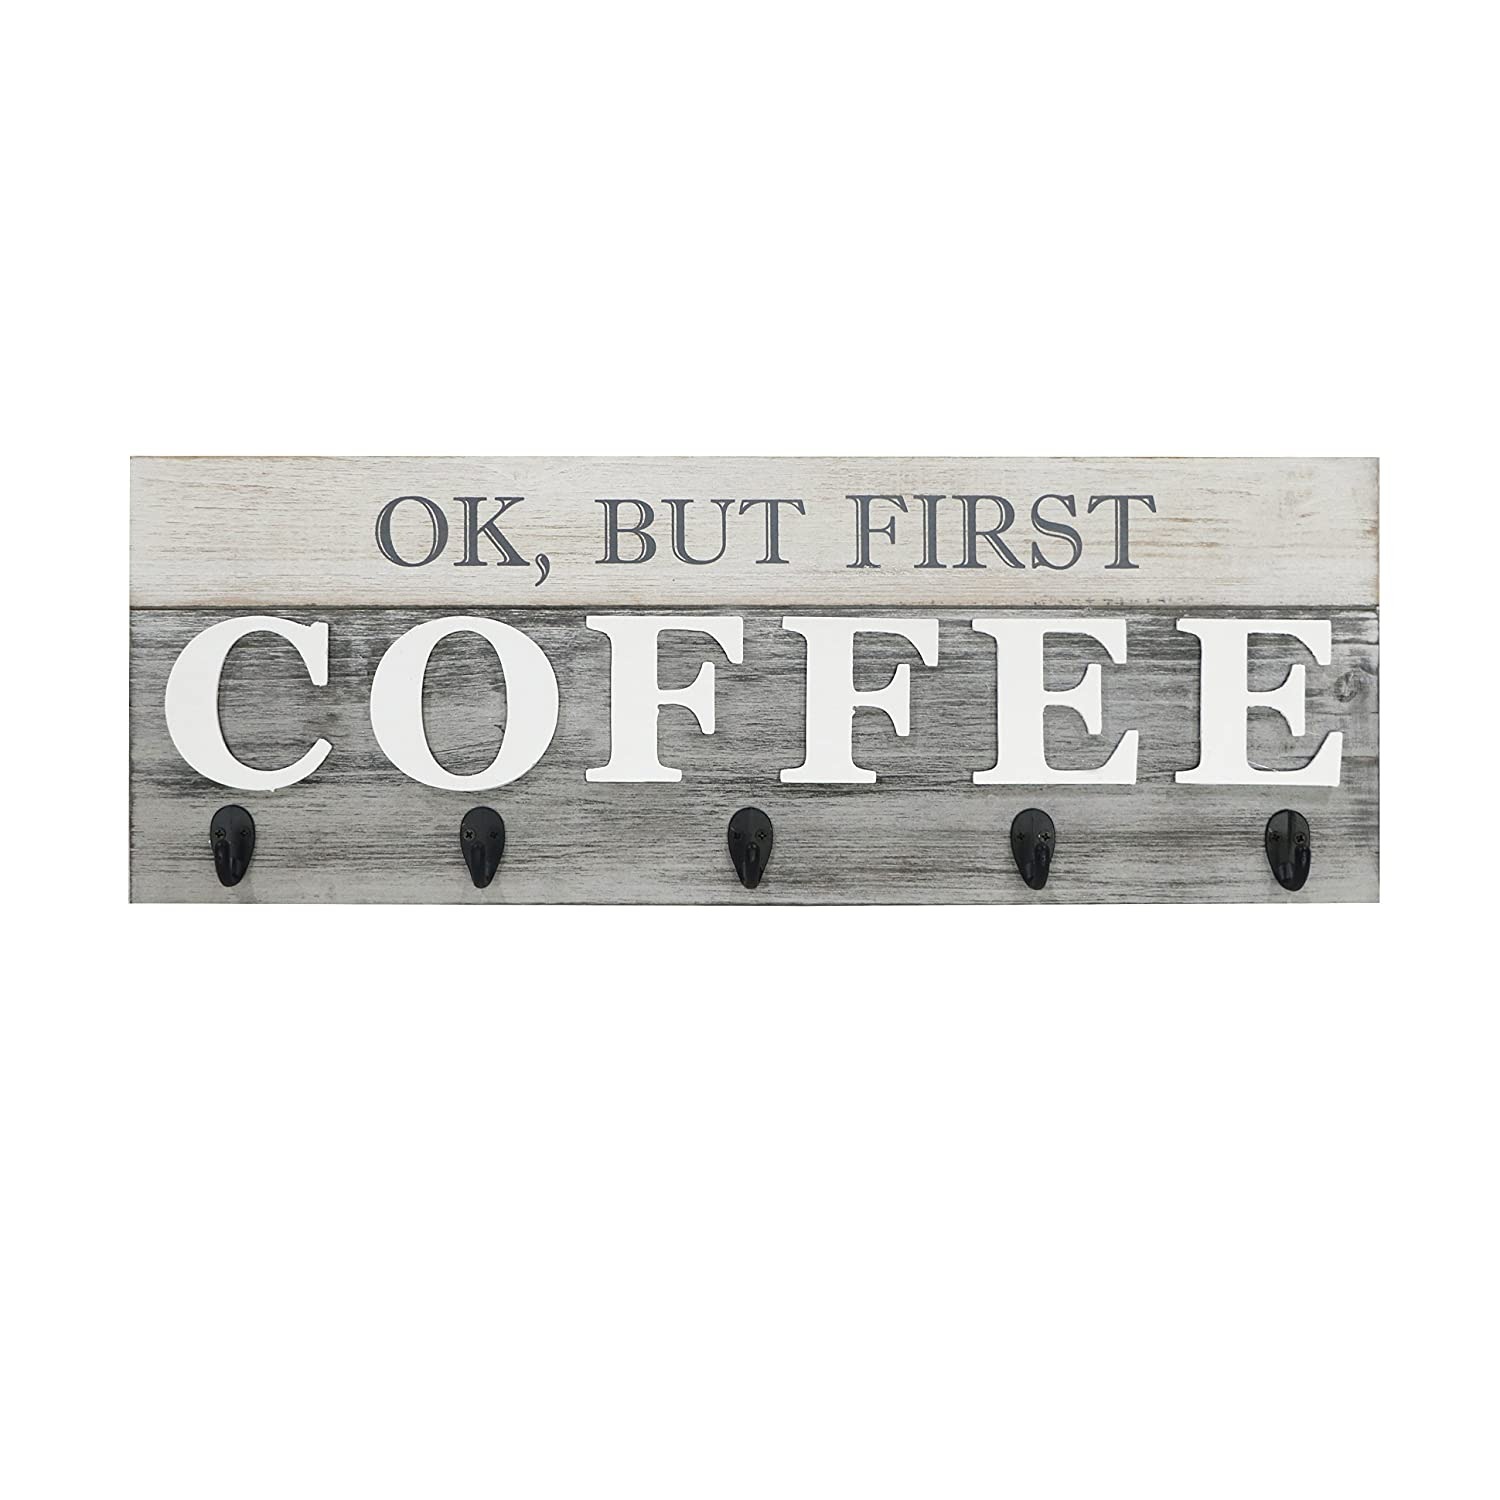 Barnyard Designs Ok But First Coffee Mug Holder Rack Display Rustic Farmhouse Wood Coffee Wall Decor Sign For Kitchen Bar Cafe 24 X 8 5 Amazon In Home Kitchen